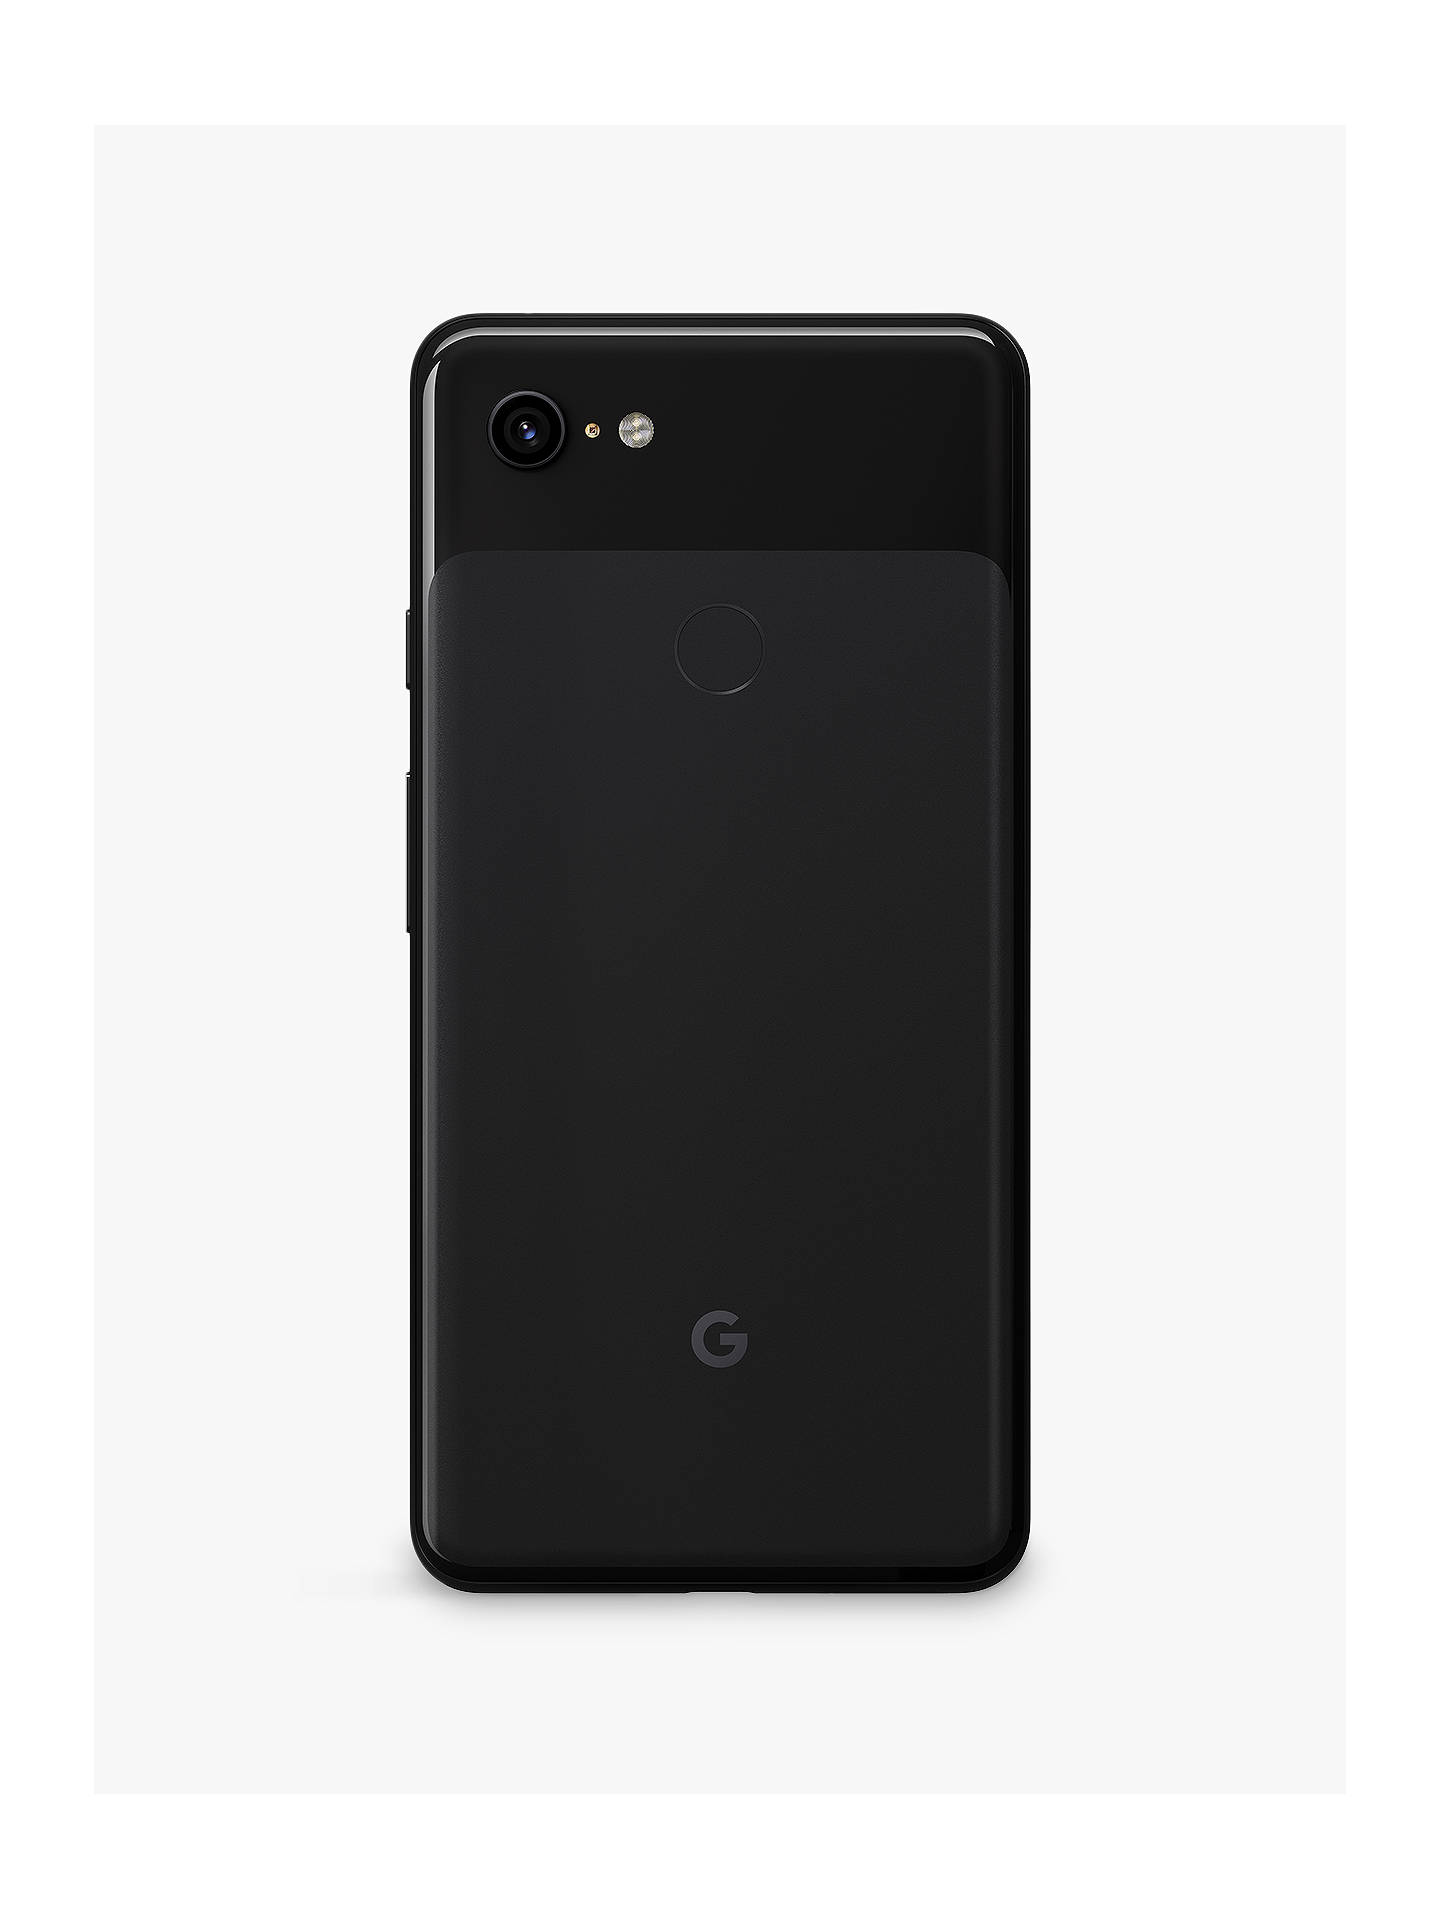 "Buy Google Pixel 3 XL Smartphone, Android, 6.3"", 4G LTE, SIM Free, 64GB, Just Black Online at johnlewis.com"